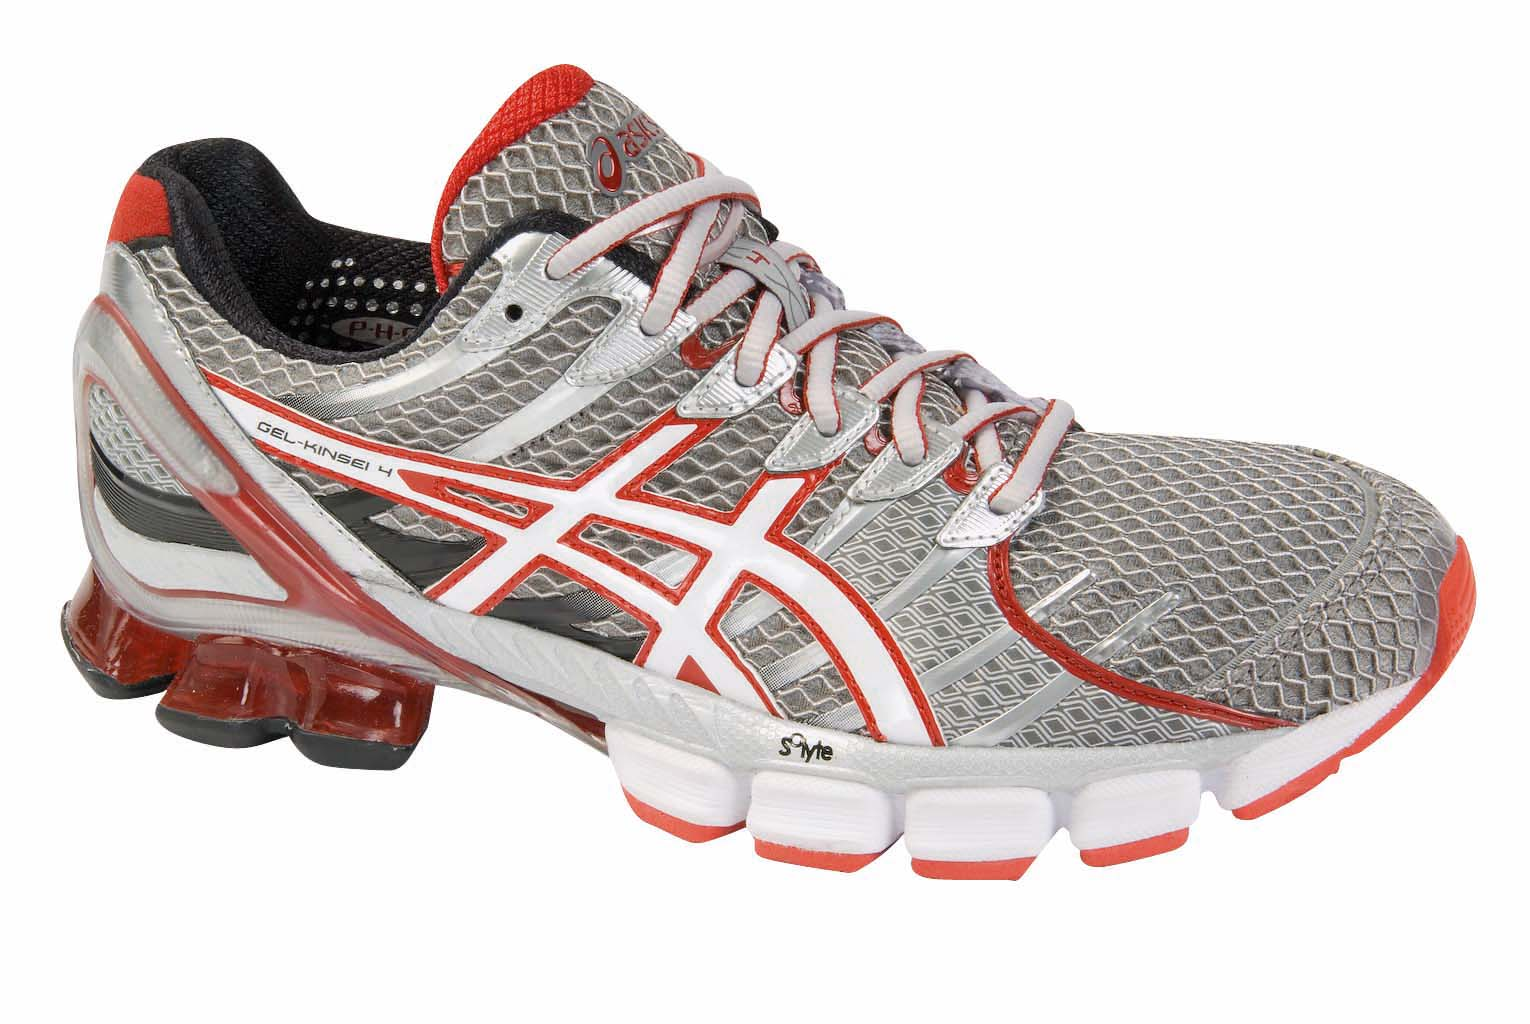 85600217620 Gel-Kinsei 4 da Asics - World Tennis - Tênis